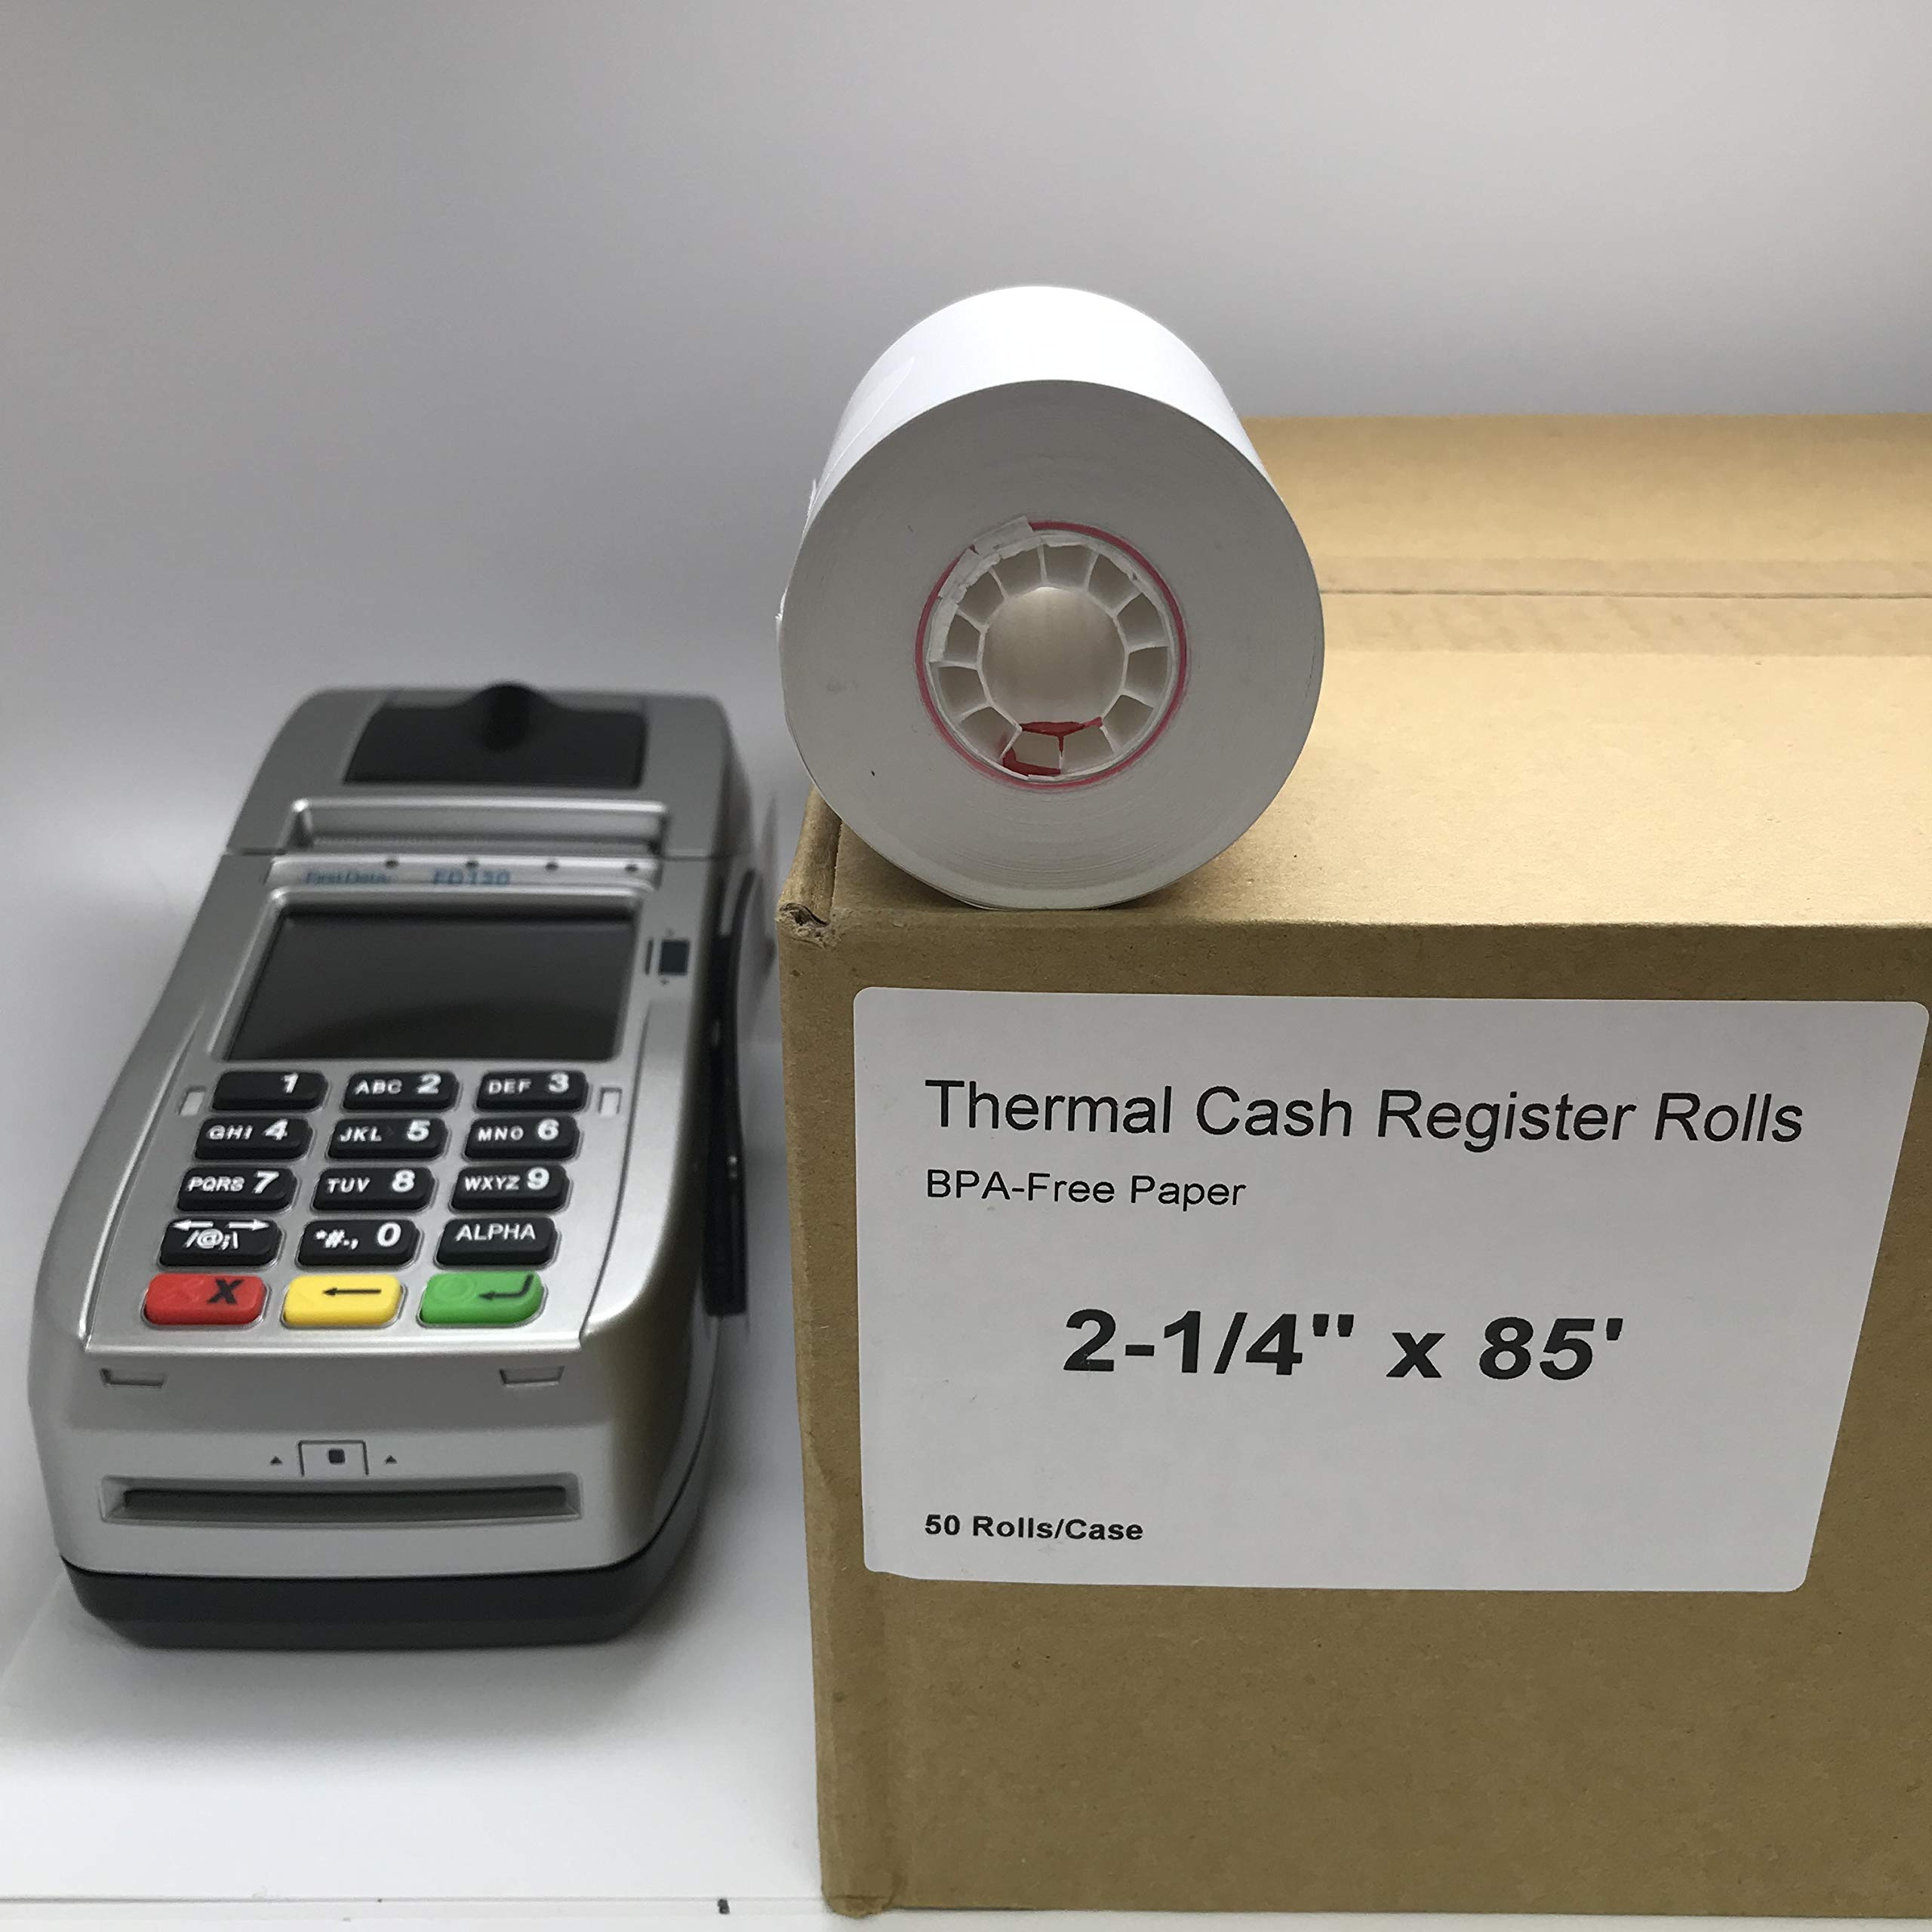 FD-130 Credit Card Terminal with 2 1/4'' x 85' Thermal Paper (50 Rolls)